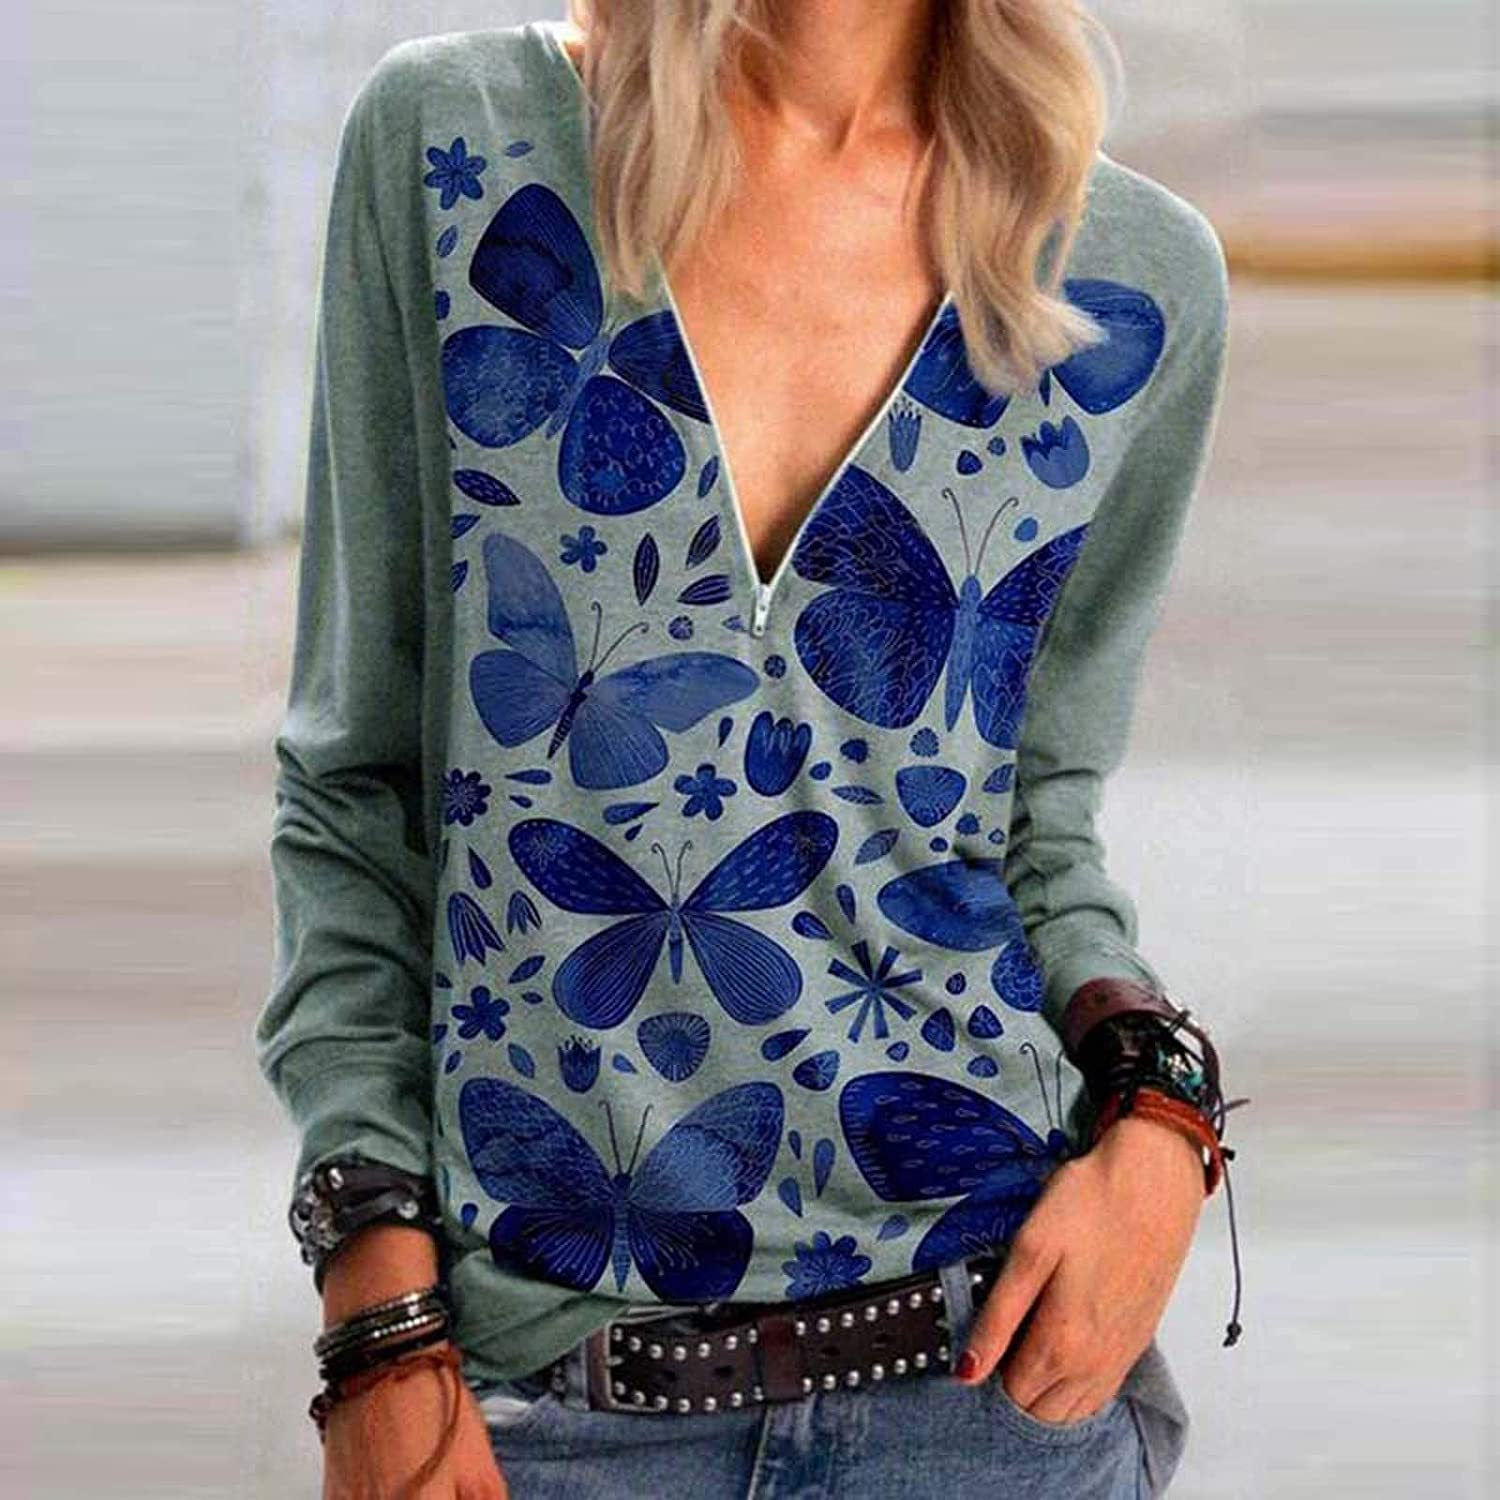 YSLMNOR Womens Zipper Shirts Fashion Printed Blouses Long Sleeve Casual Tunic Top Plus Size Pullover